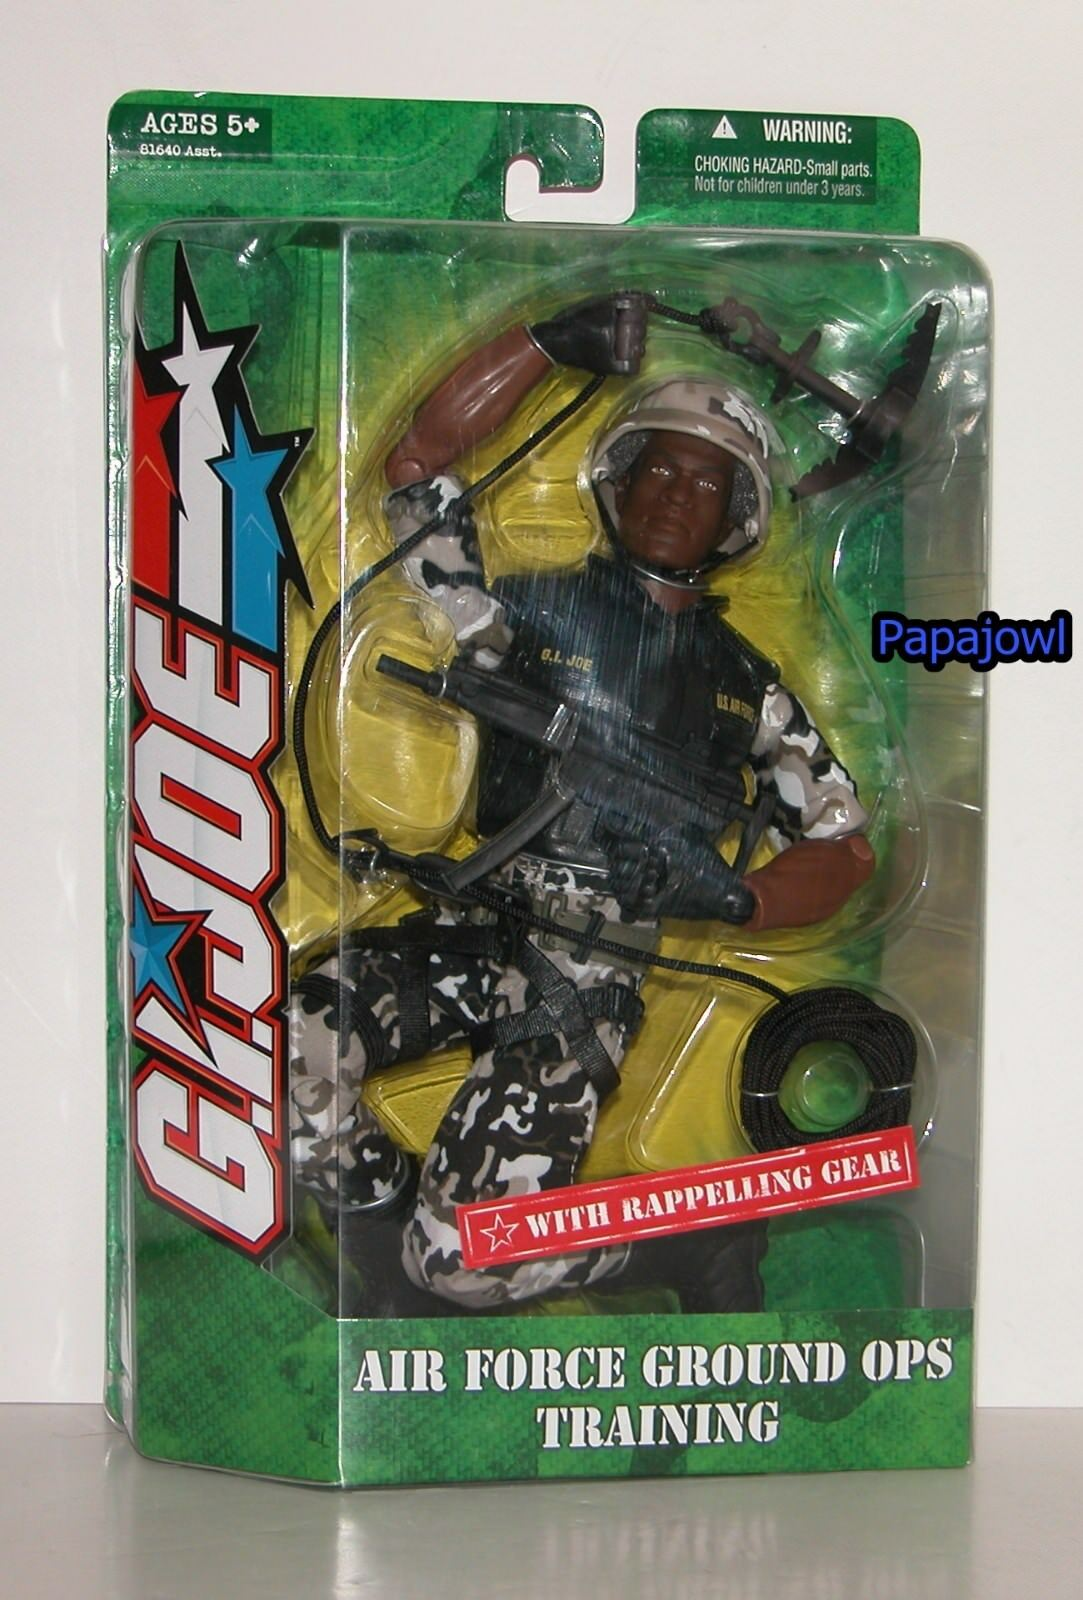 G.I. Joe Air Force Ground OPS Training With Rappelling Gear 12 cifra Hasbro